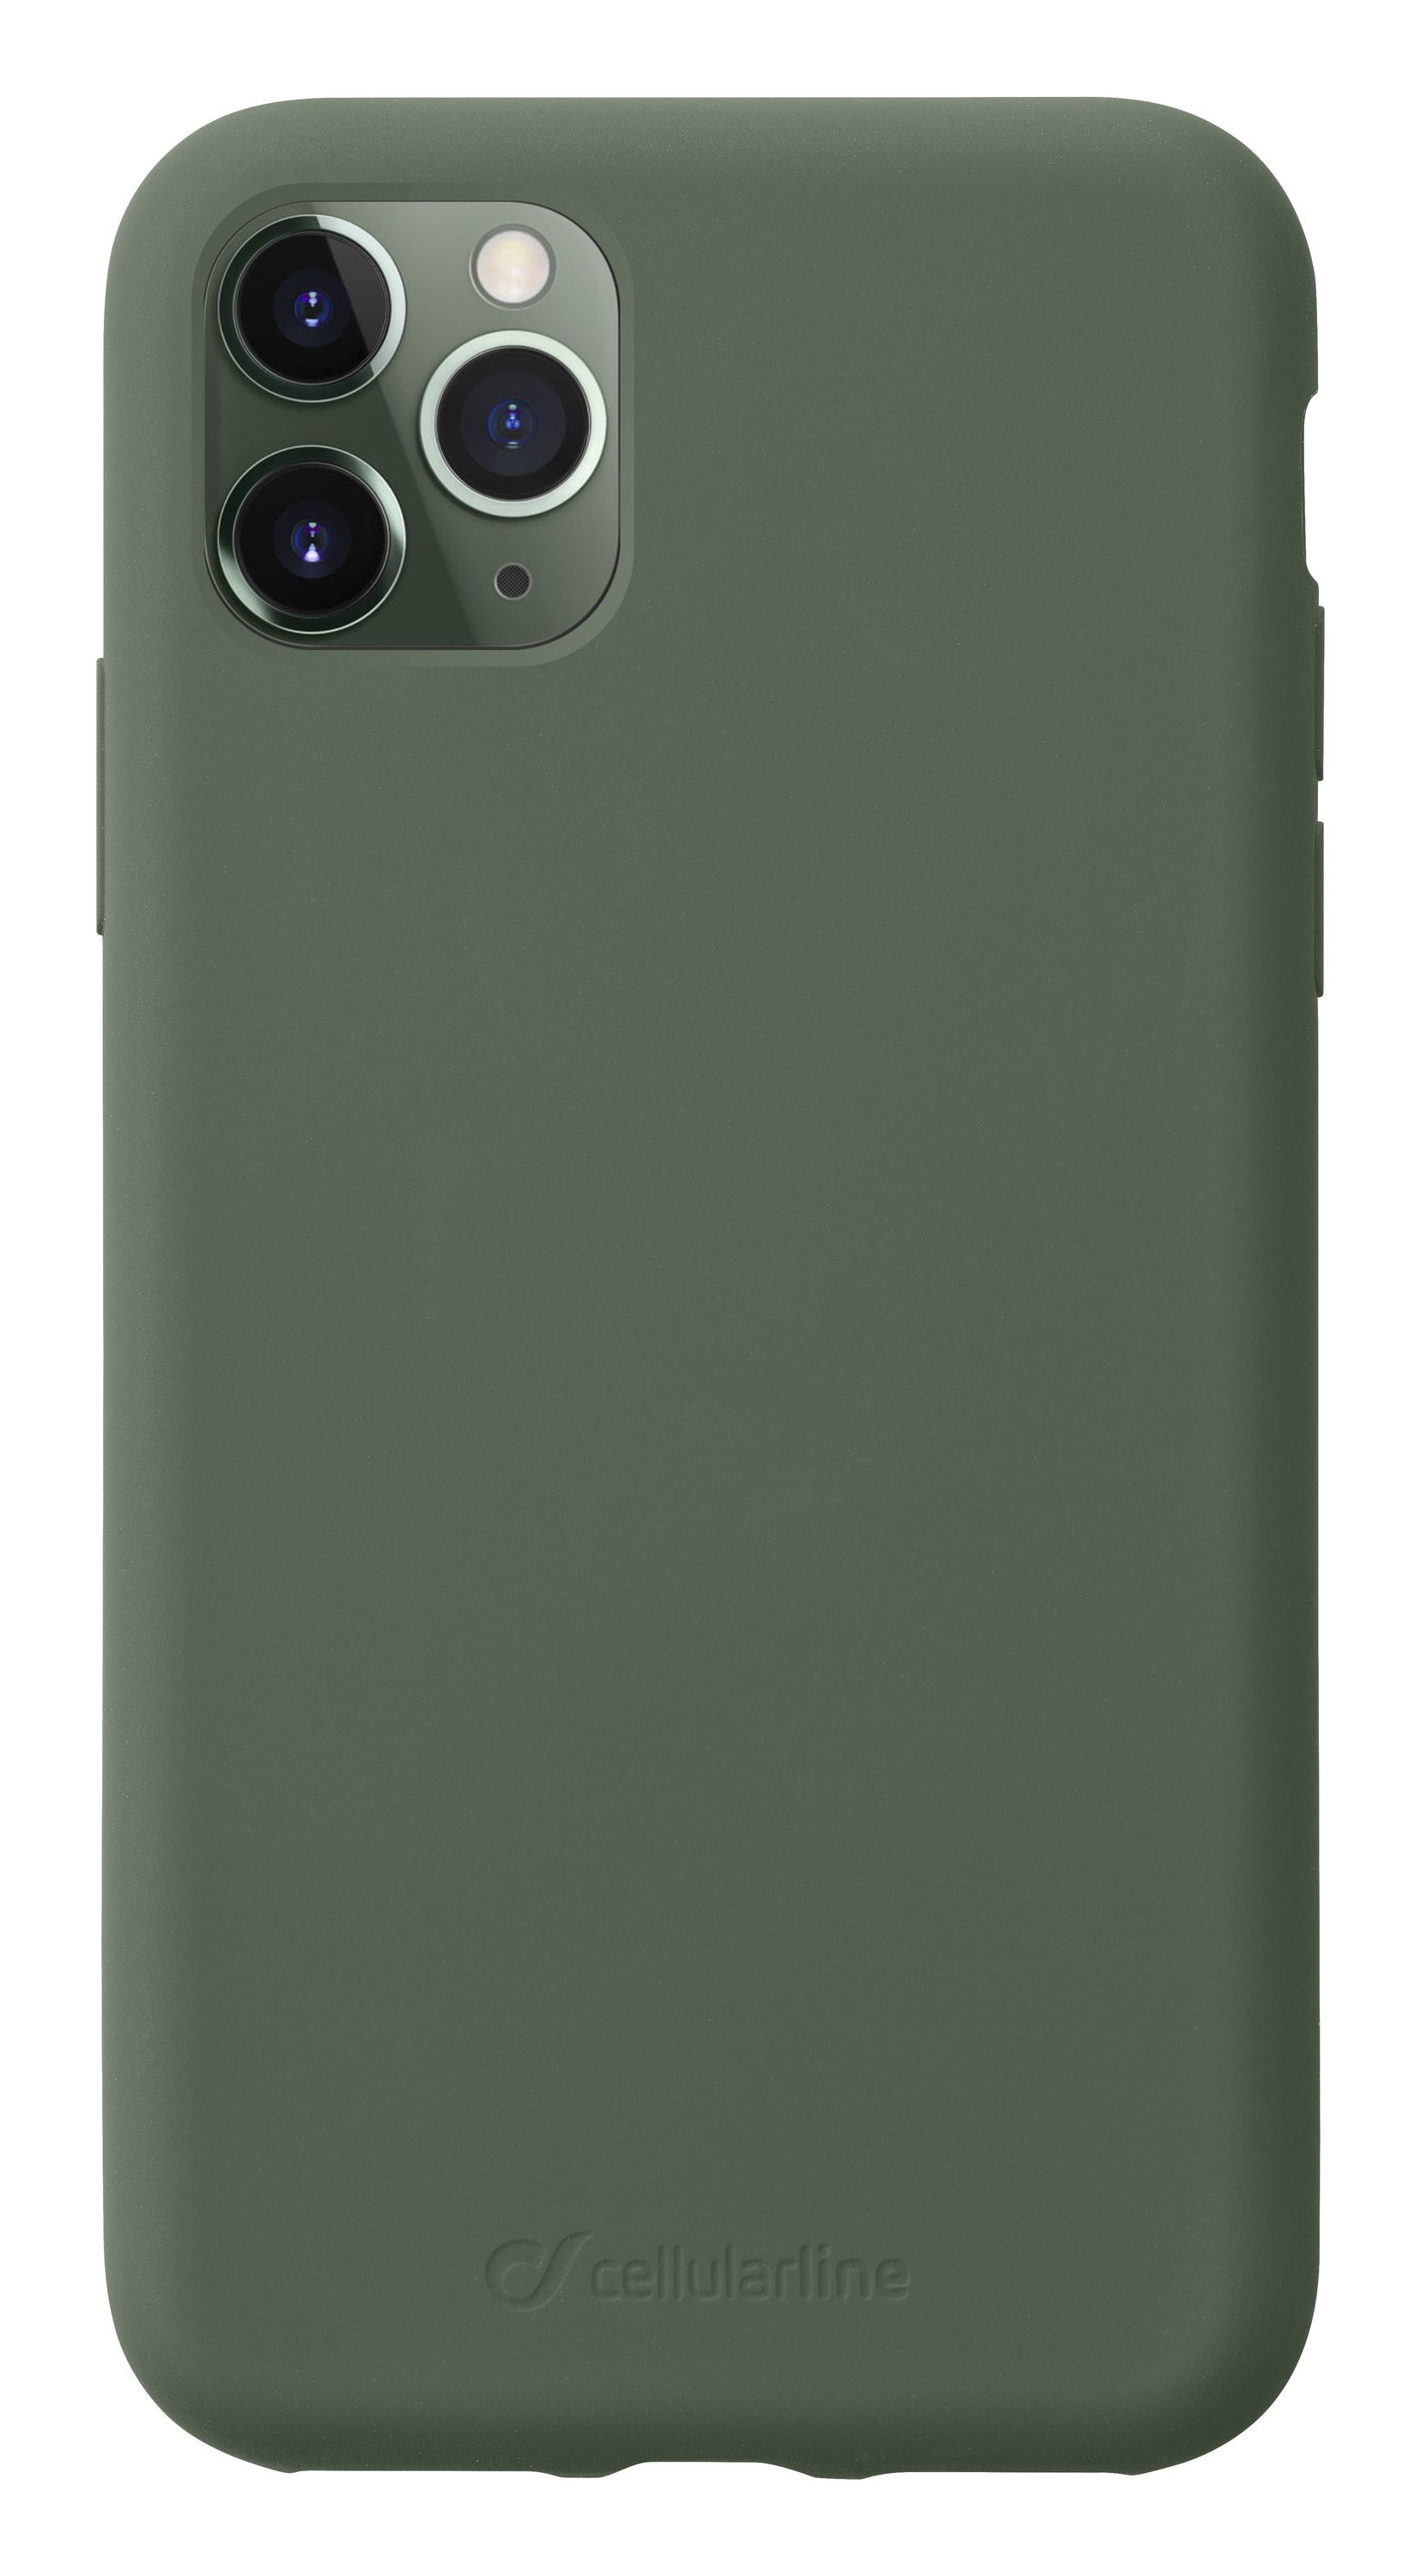 Cellularline Sensation - iPhone 11 Pro Custodia in silicone soft touch Verde